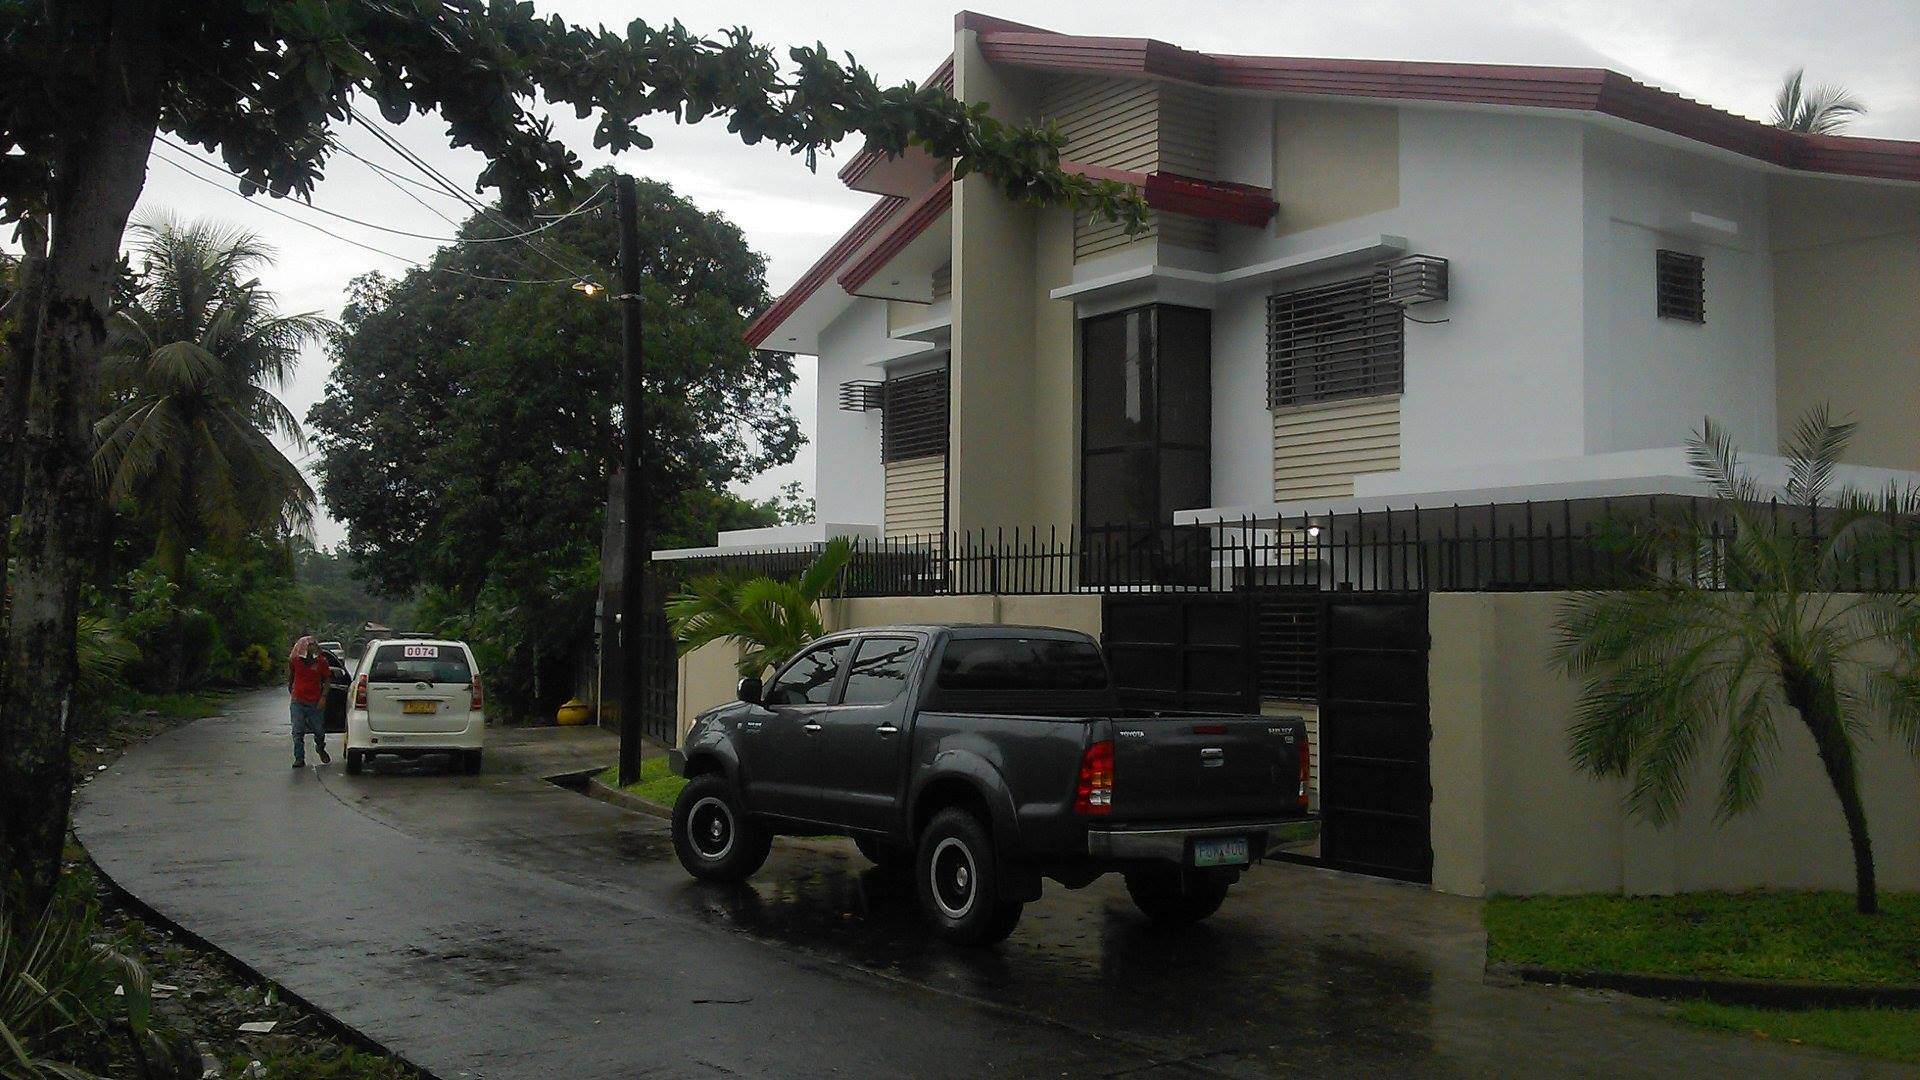 FOR RENT / LEASE: House Negros Occidental > Bacolod City